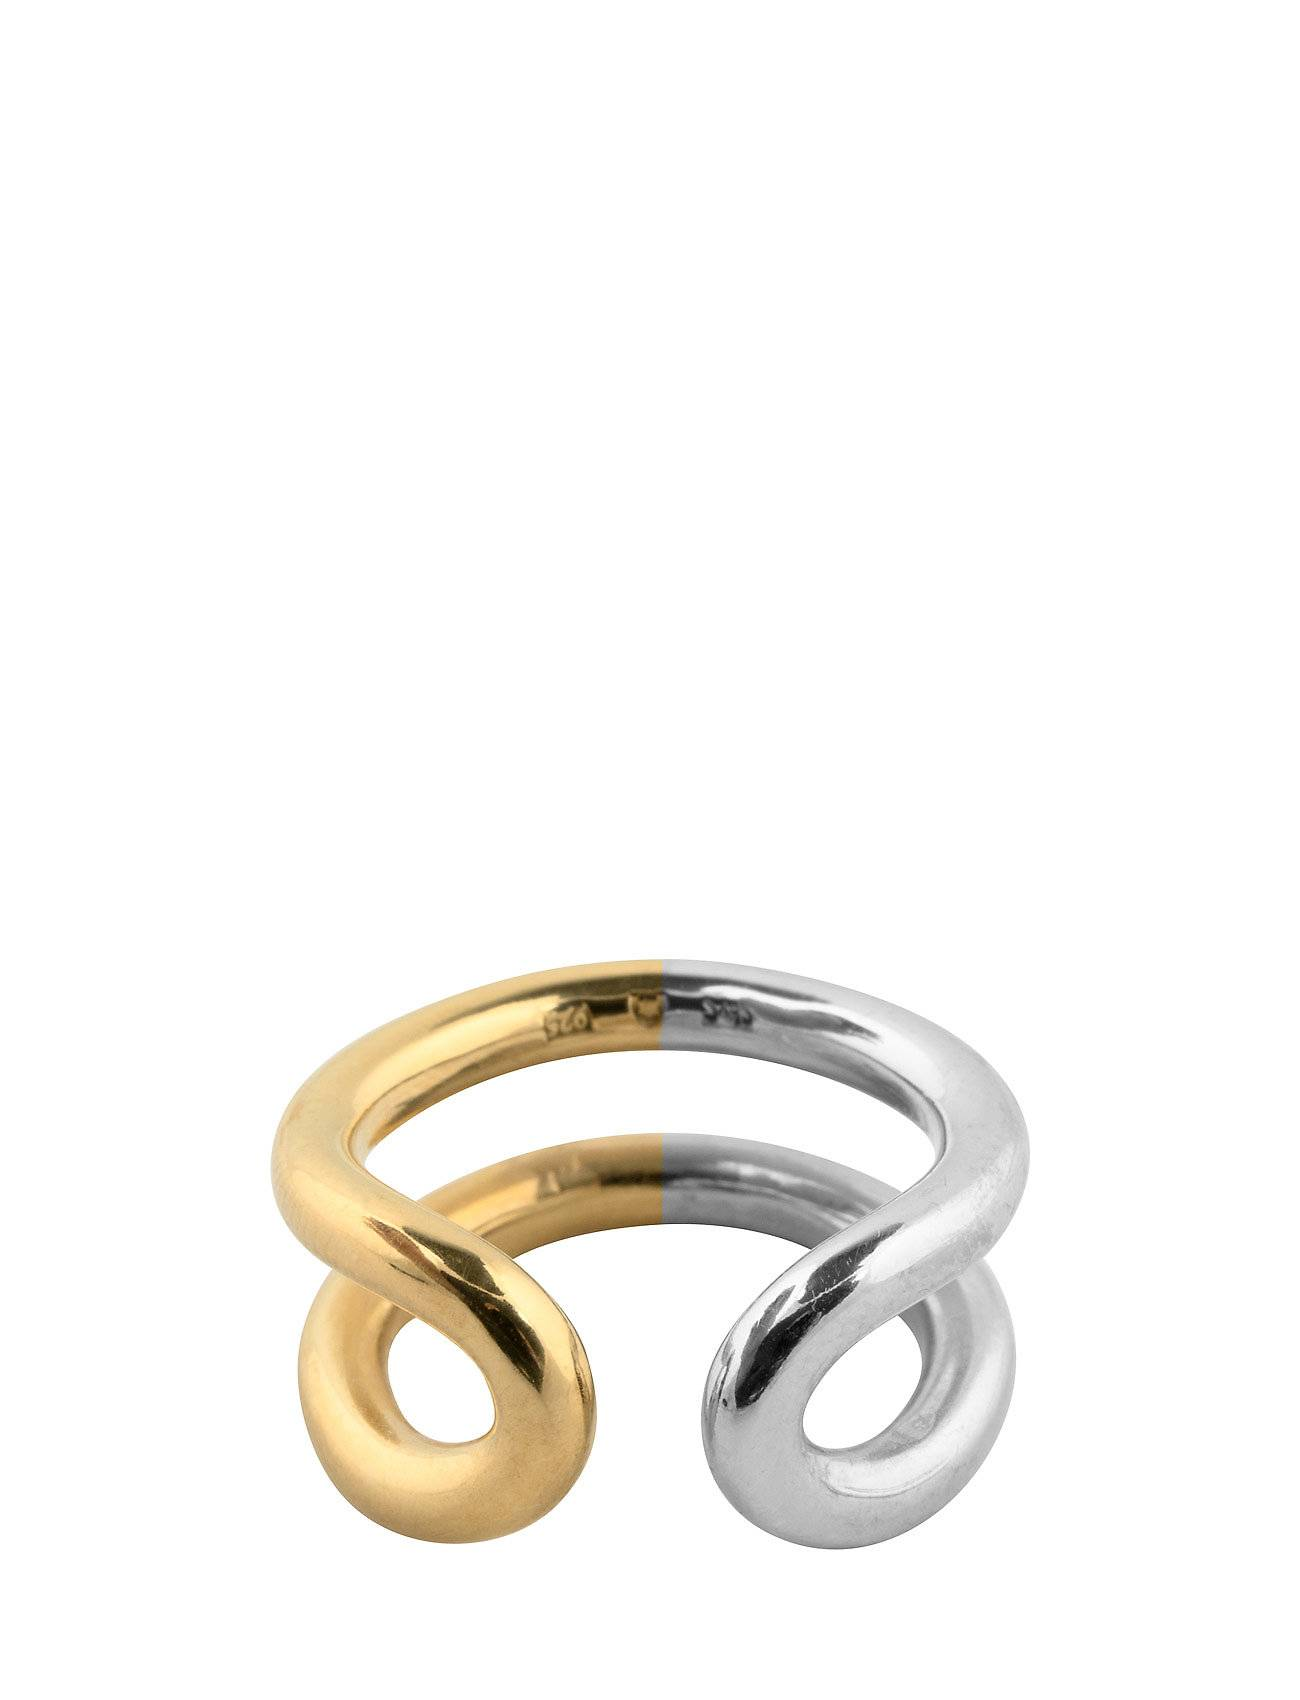 SOPHIE by SOPHIE Two Tone Ring